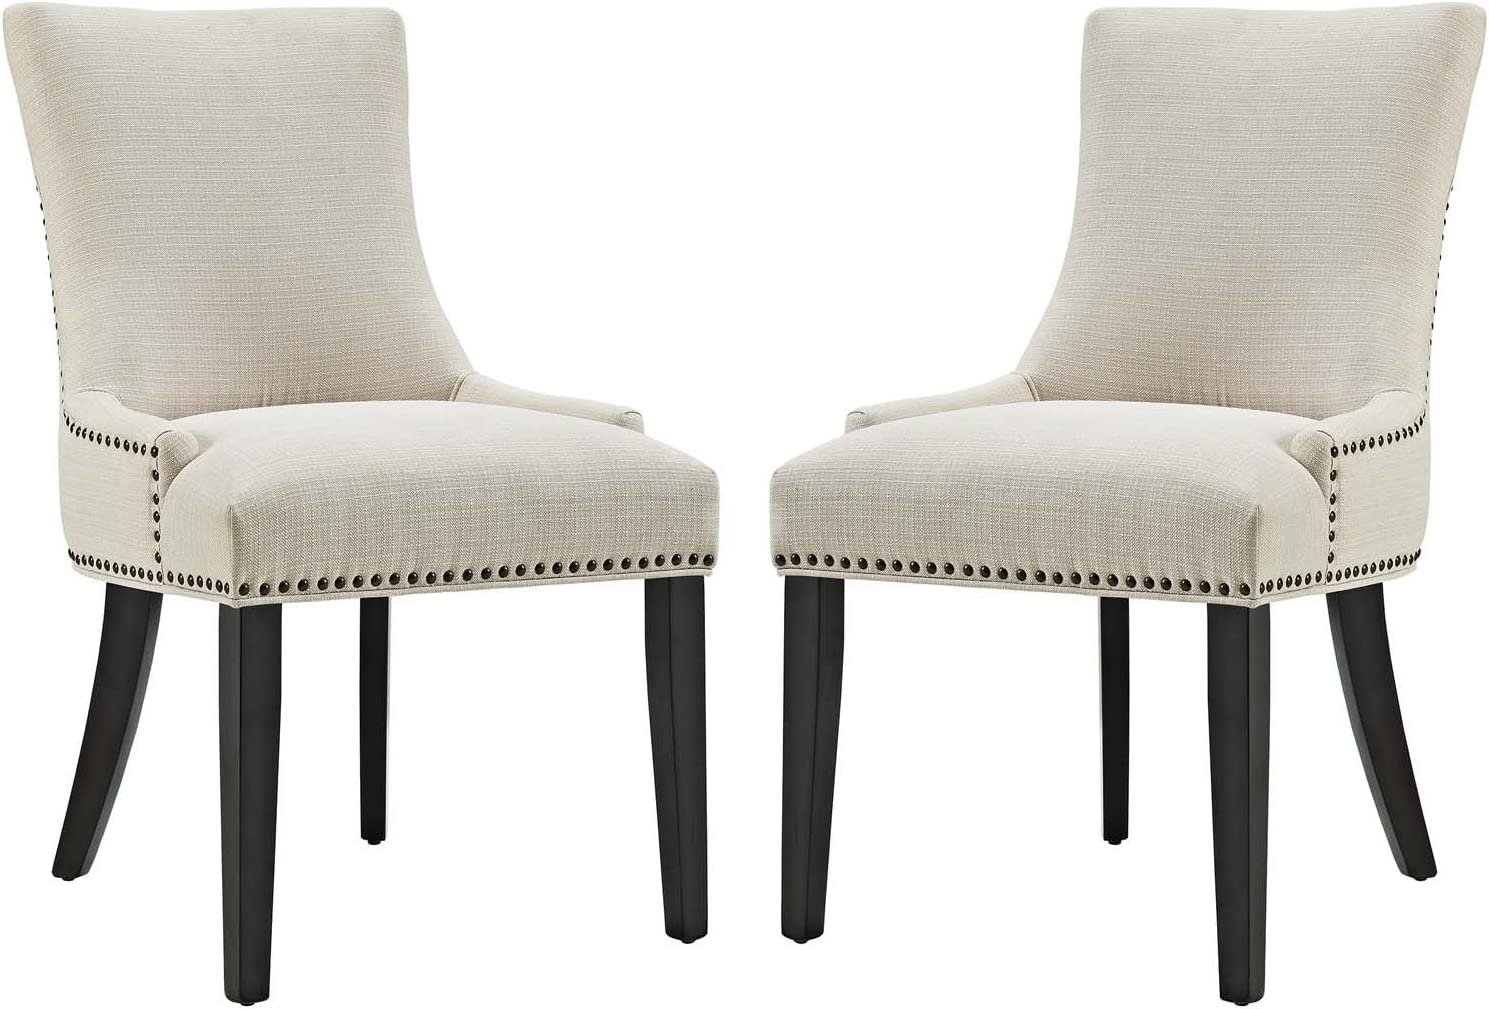 Modway Marquis Modern Elegant Upholstered Fabric Parsons Dining Side Chair With Nailhead Trim And Wood Legs, Set of 2, Beige